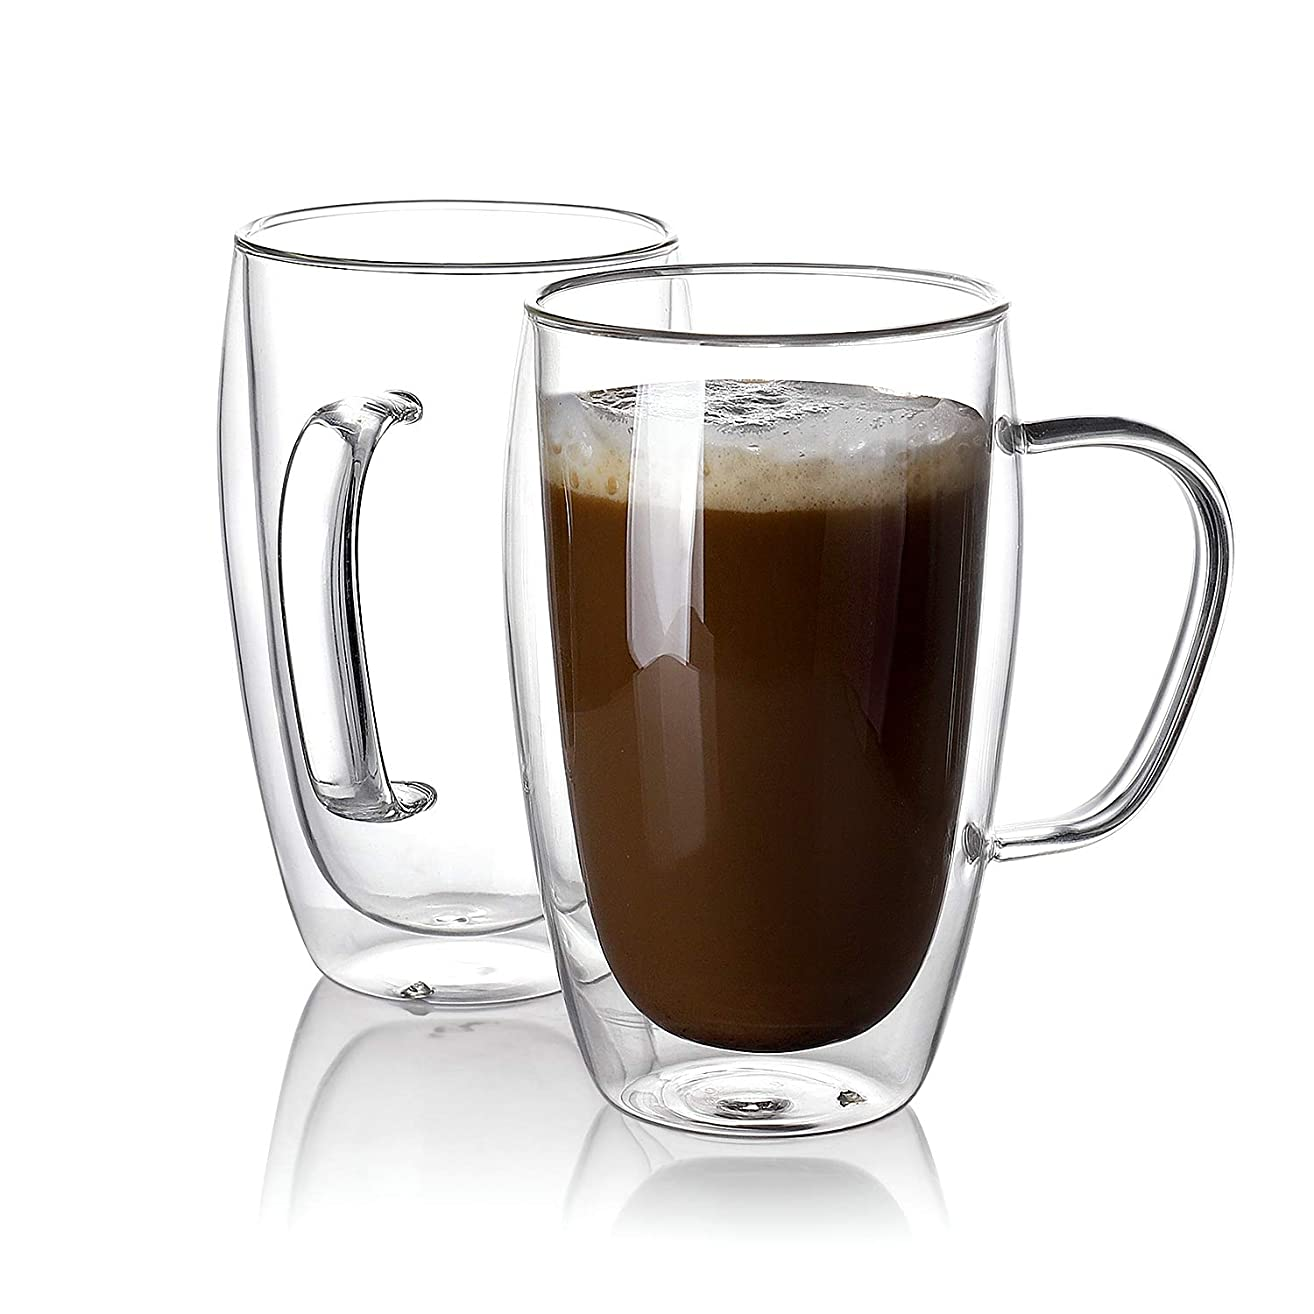 Sweese 4612 Glass Coffee Mugs Set of 2 - Double Wall Tall Insulated Tea Cup with Handle Glassware, Perfect for Cappuccino, Latte, Macchiato, Tea, Juice, Iced Beverages, 15 oz